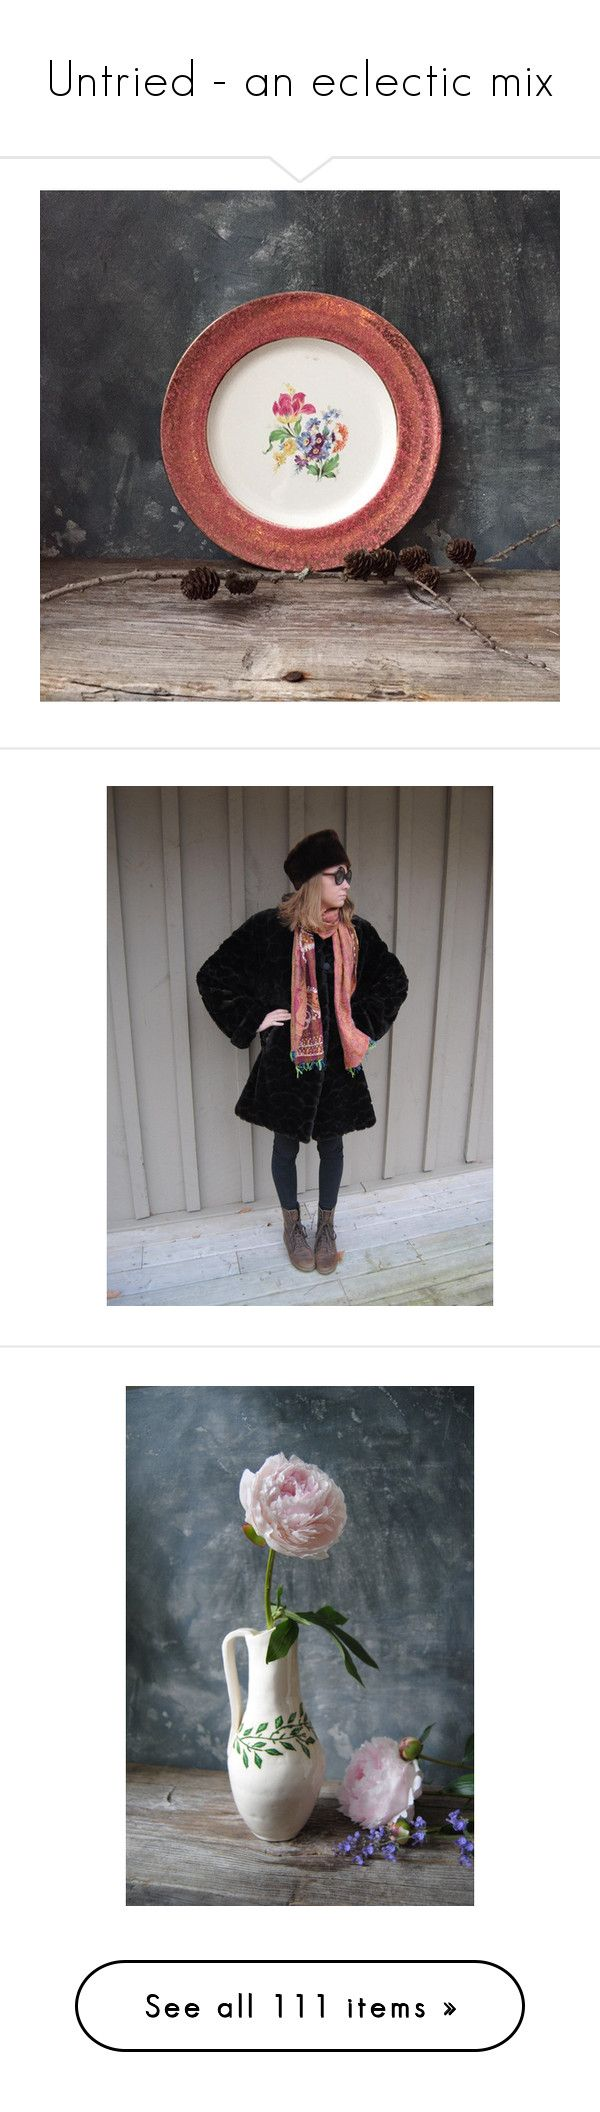 """""""Untried - an eclectic mix"""" by untried-shop ❤ liked on Polyvore featuring outerwear, coats, vintage faux fur coat, short fur coat, short coat, faux fur coat, vintage coats, home, kitchen & dining and serveware"""